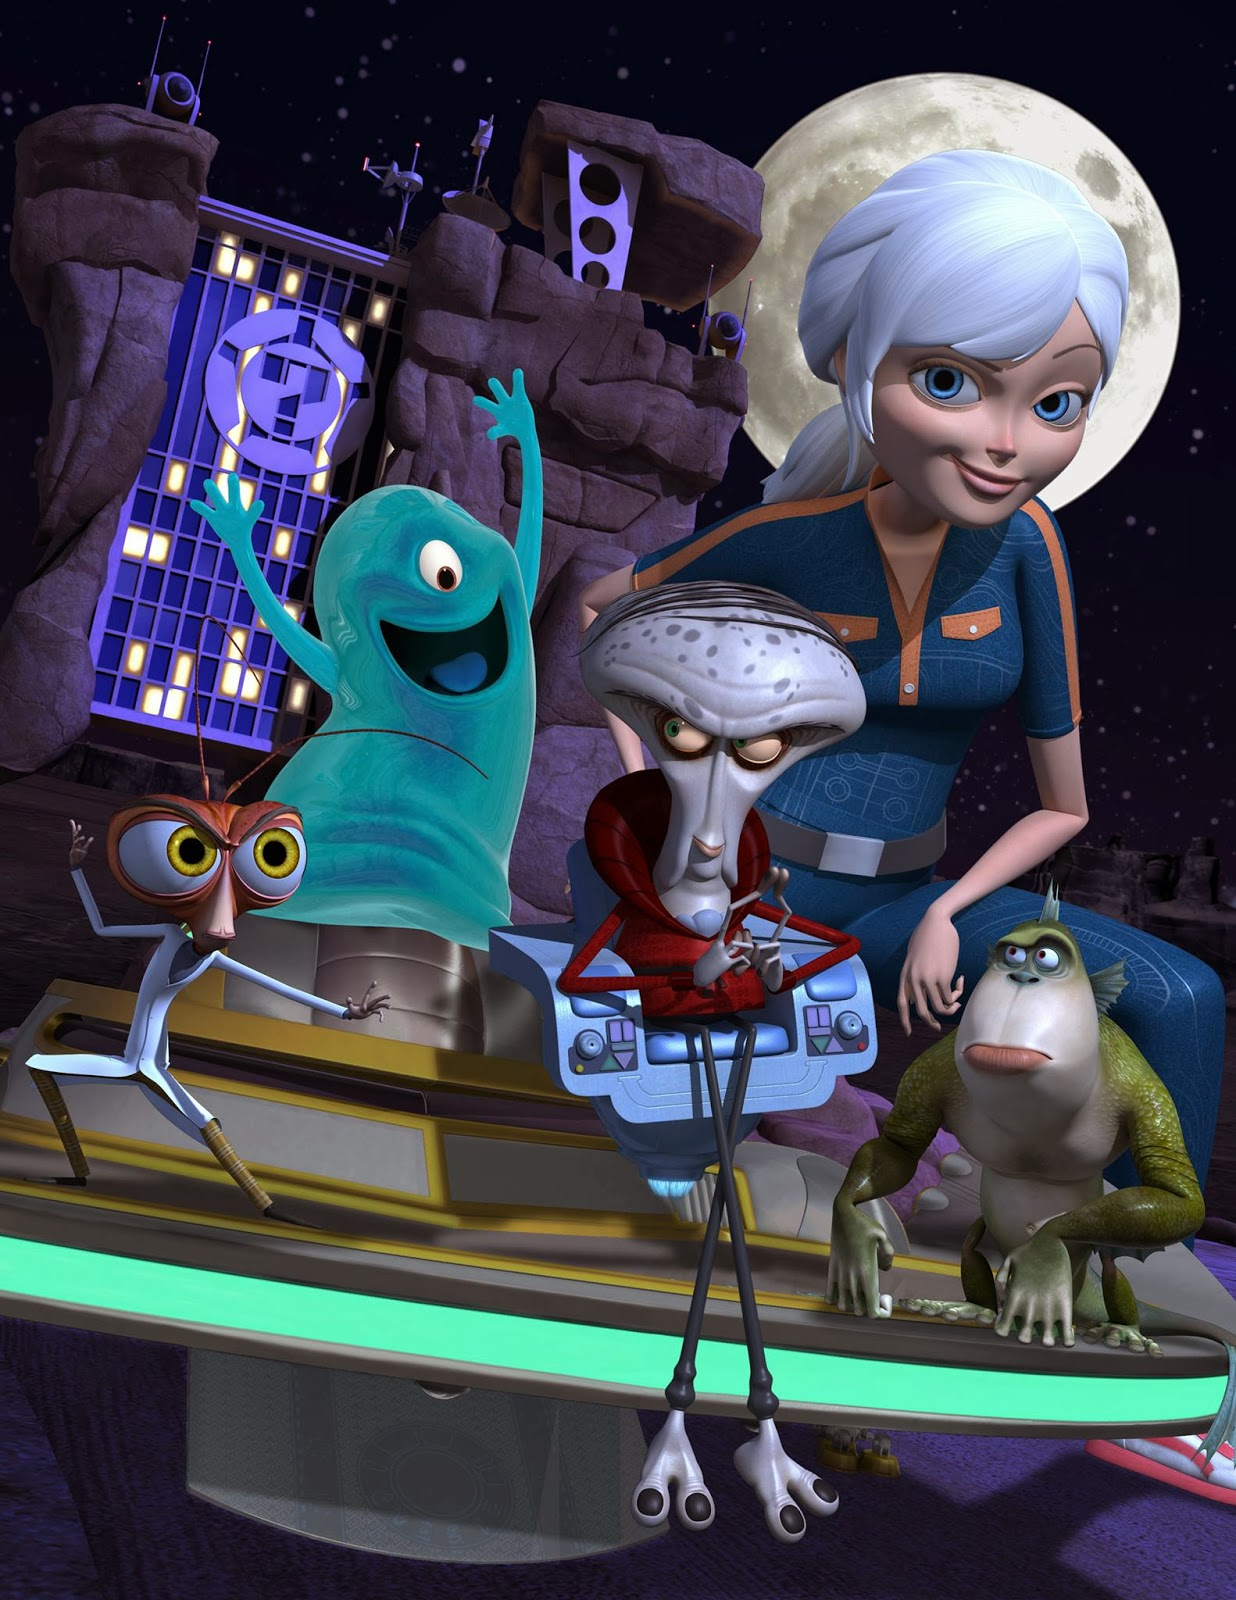 Nickalive Nickelodeon Asia To Start To Show Monsters Vs Aliens